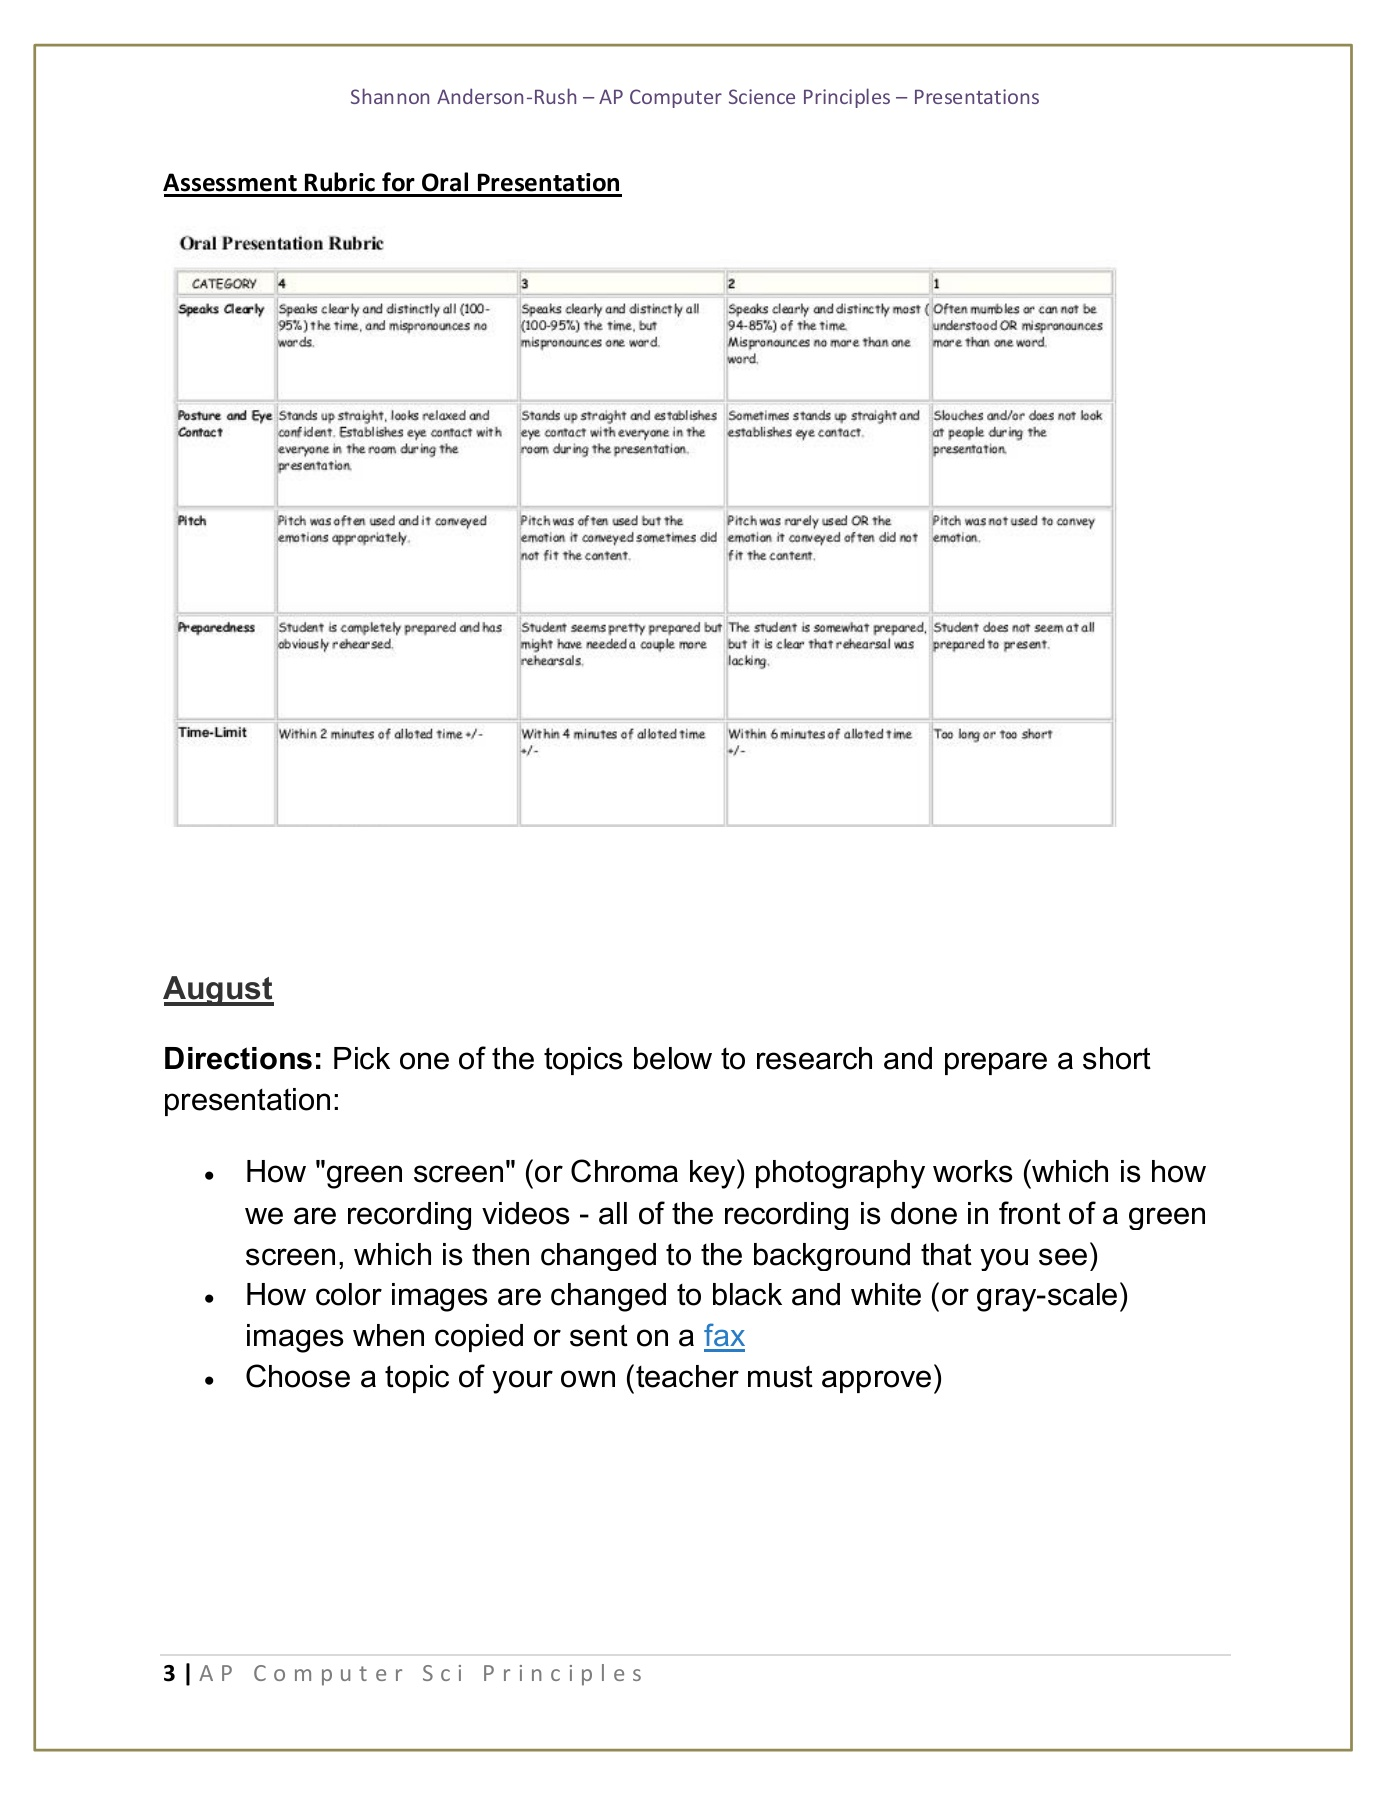 APCSP_Presentations Pages 1 - 15 - Text Version | AnyFlip